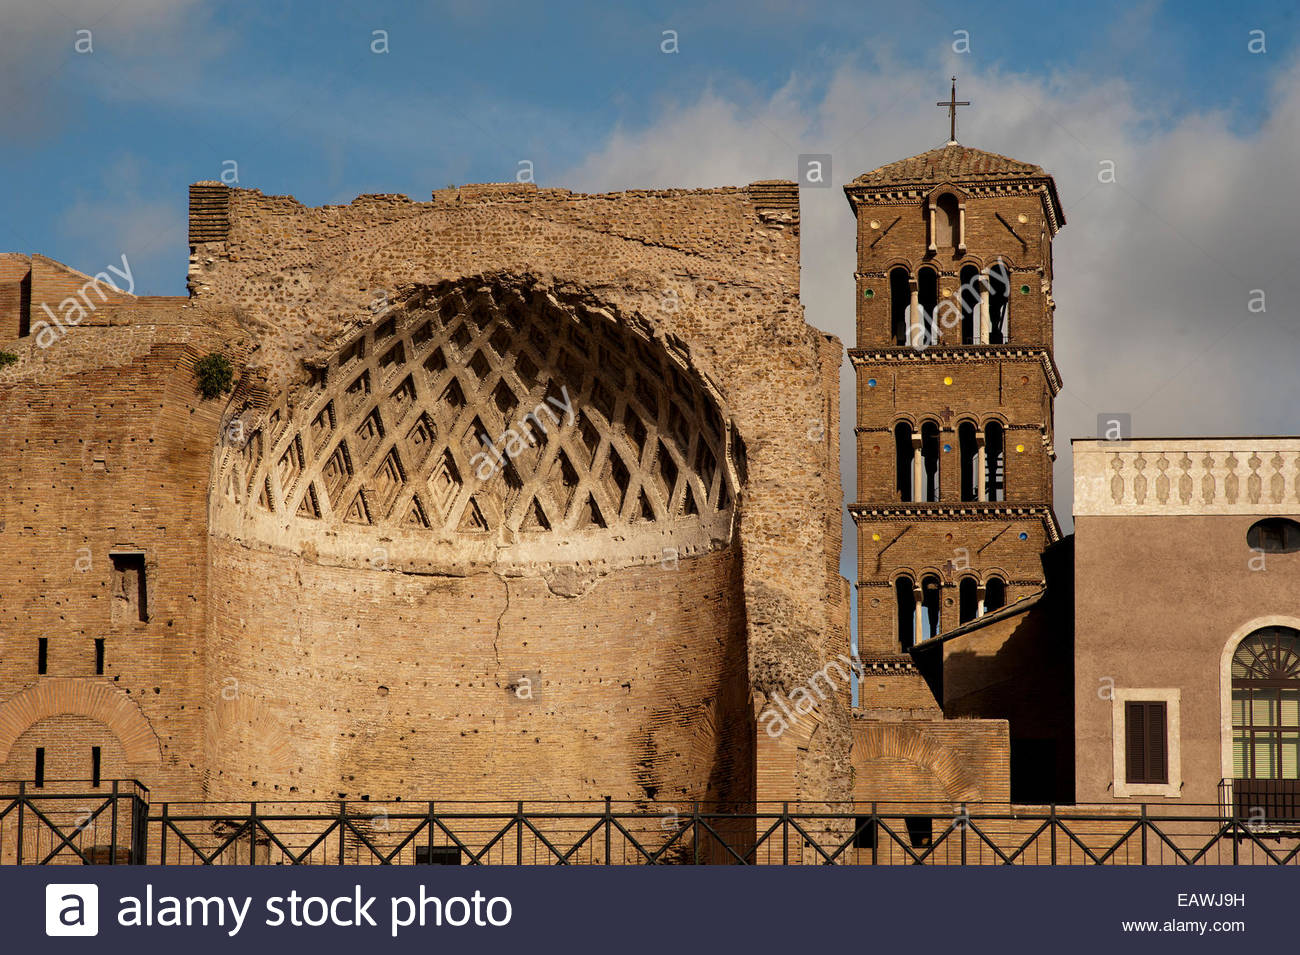 The coffered vaulted ceiling of the Temple of Venus and Roma in Rome. - Stock Image